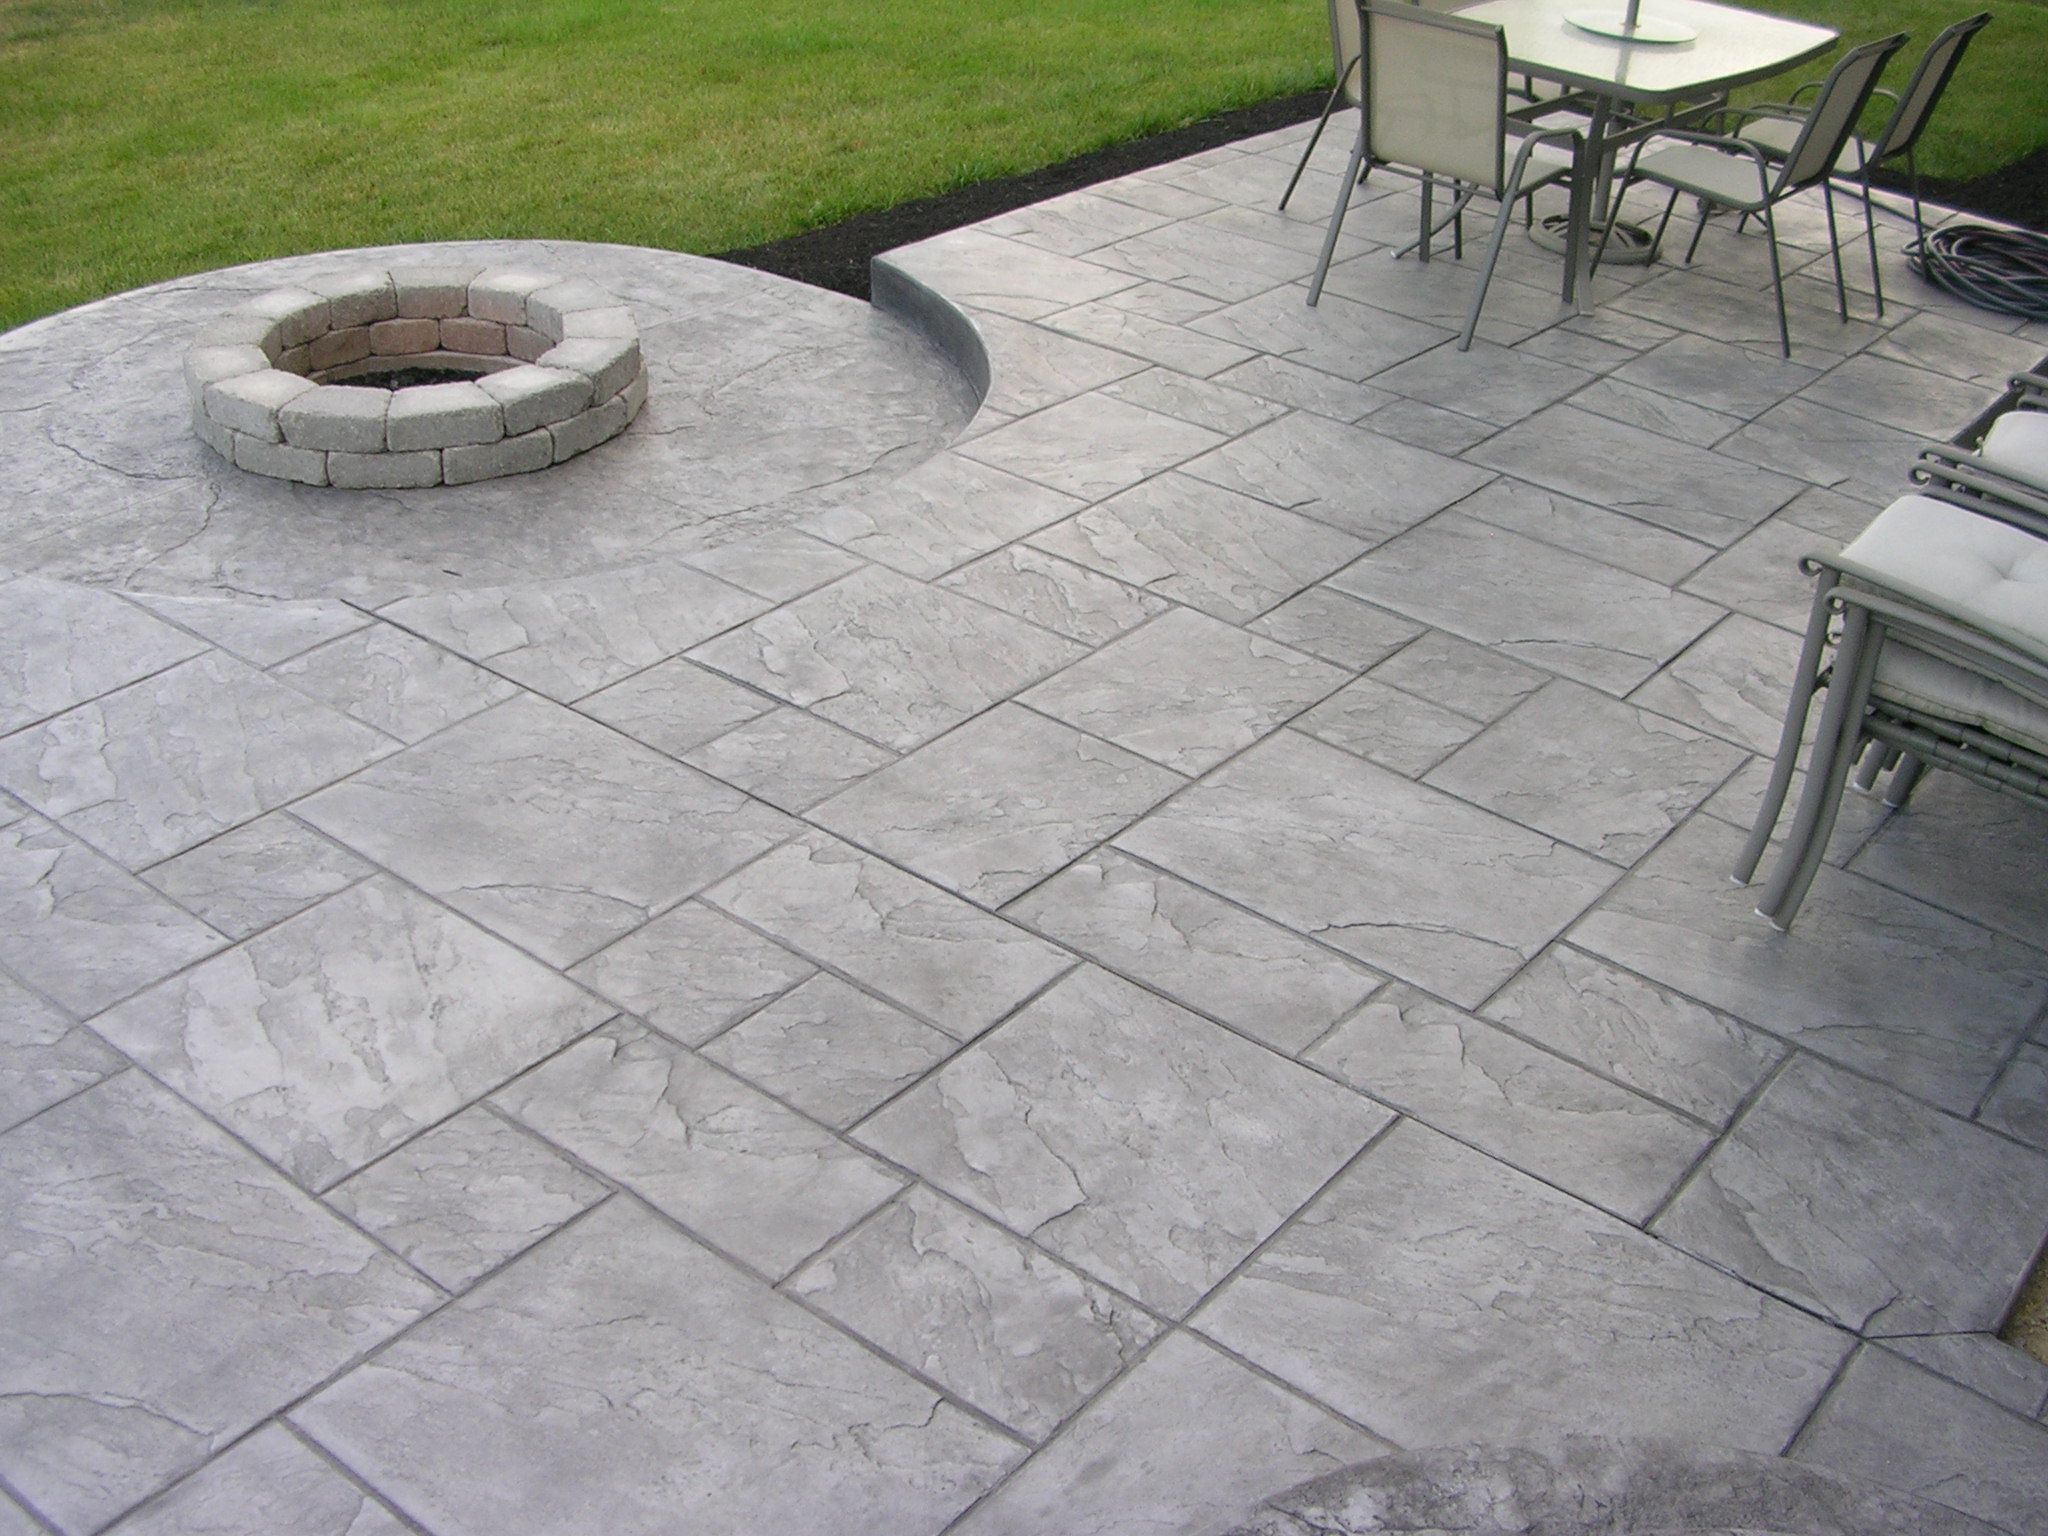 Decorative Patio Tiles Classy Stamped Concrete Patios Driveways & Walkways Columbus Ohio Review